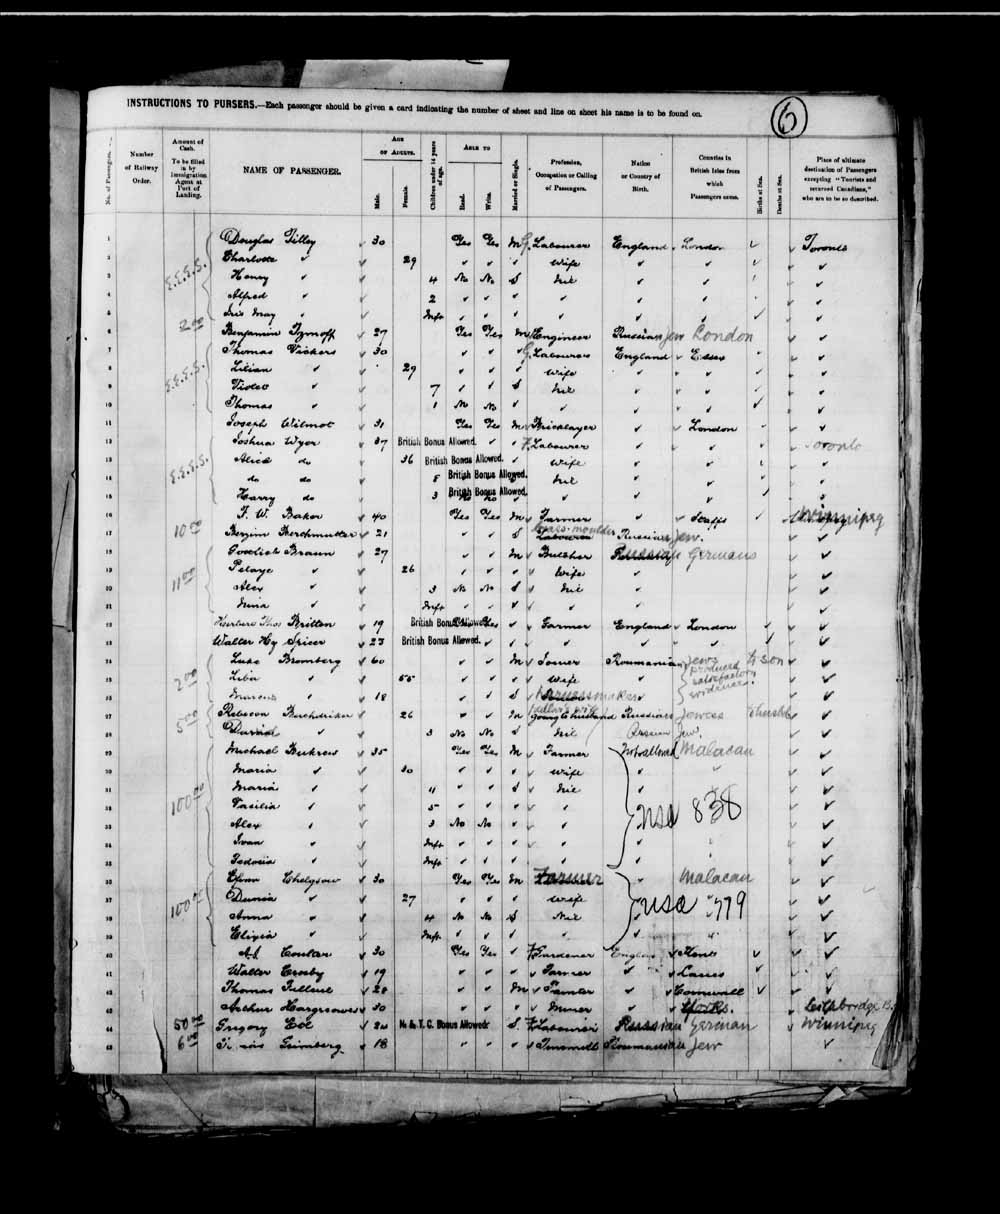 Digitized page of Passenger Lists for Image No.: e003658076